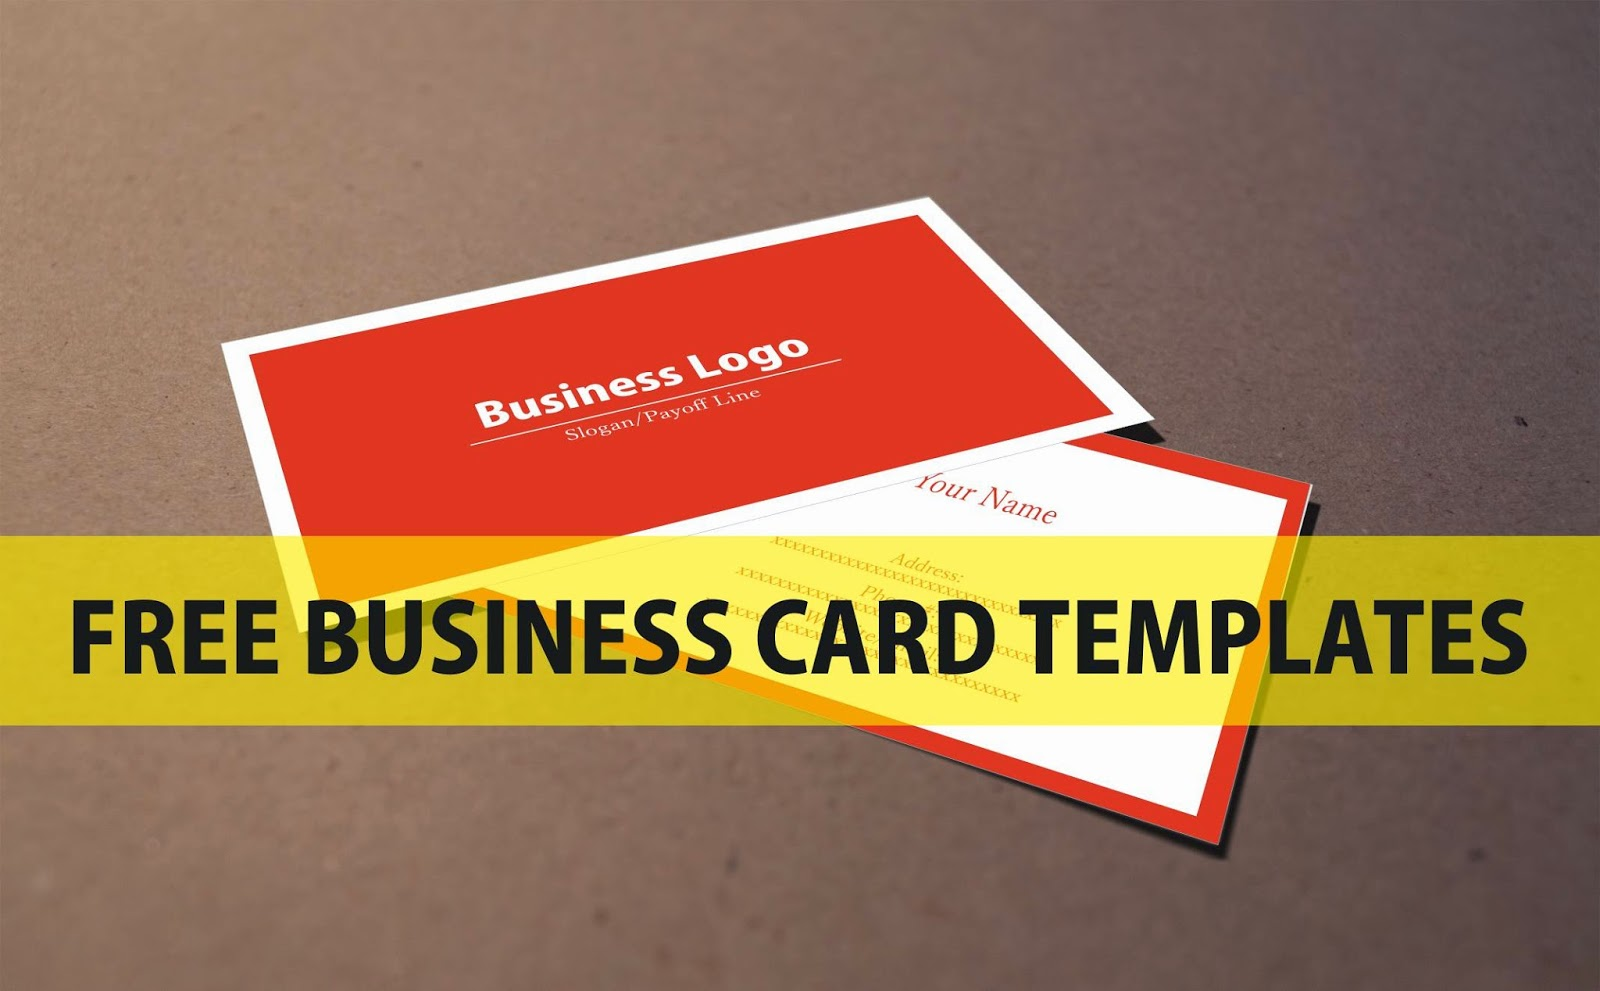 Free business card template download coreldraw file a graphic free business card template download coreldraw file wajeb Gallery